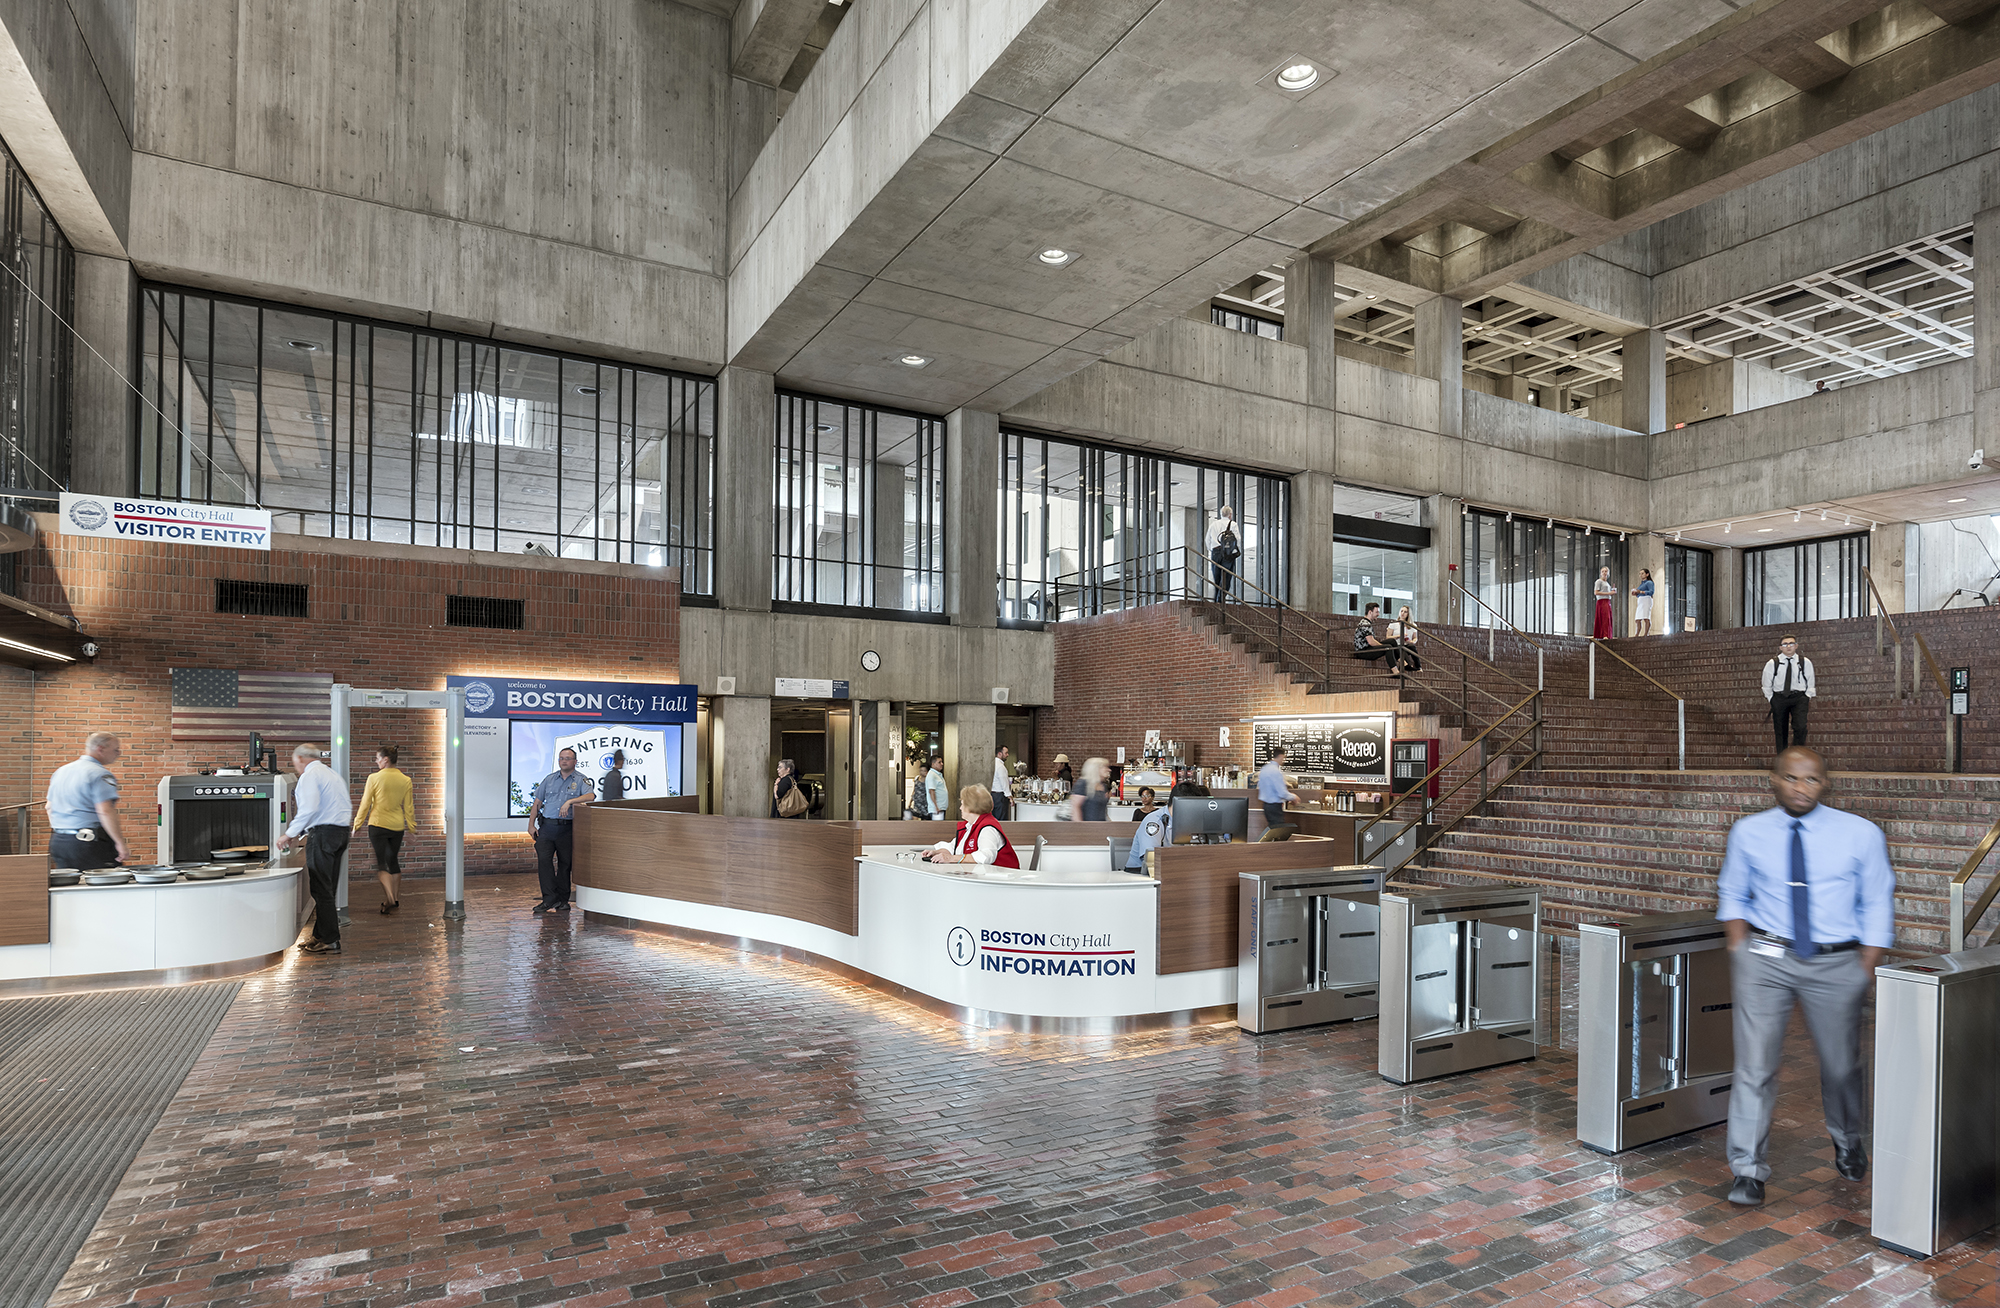 Boston City Hall Public Spaces Renovation receives Architizer 2019 A+ Award!